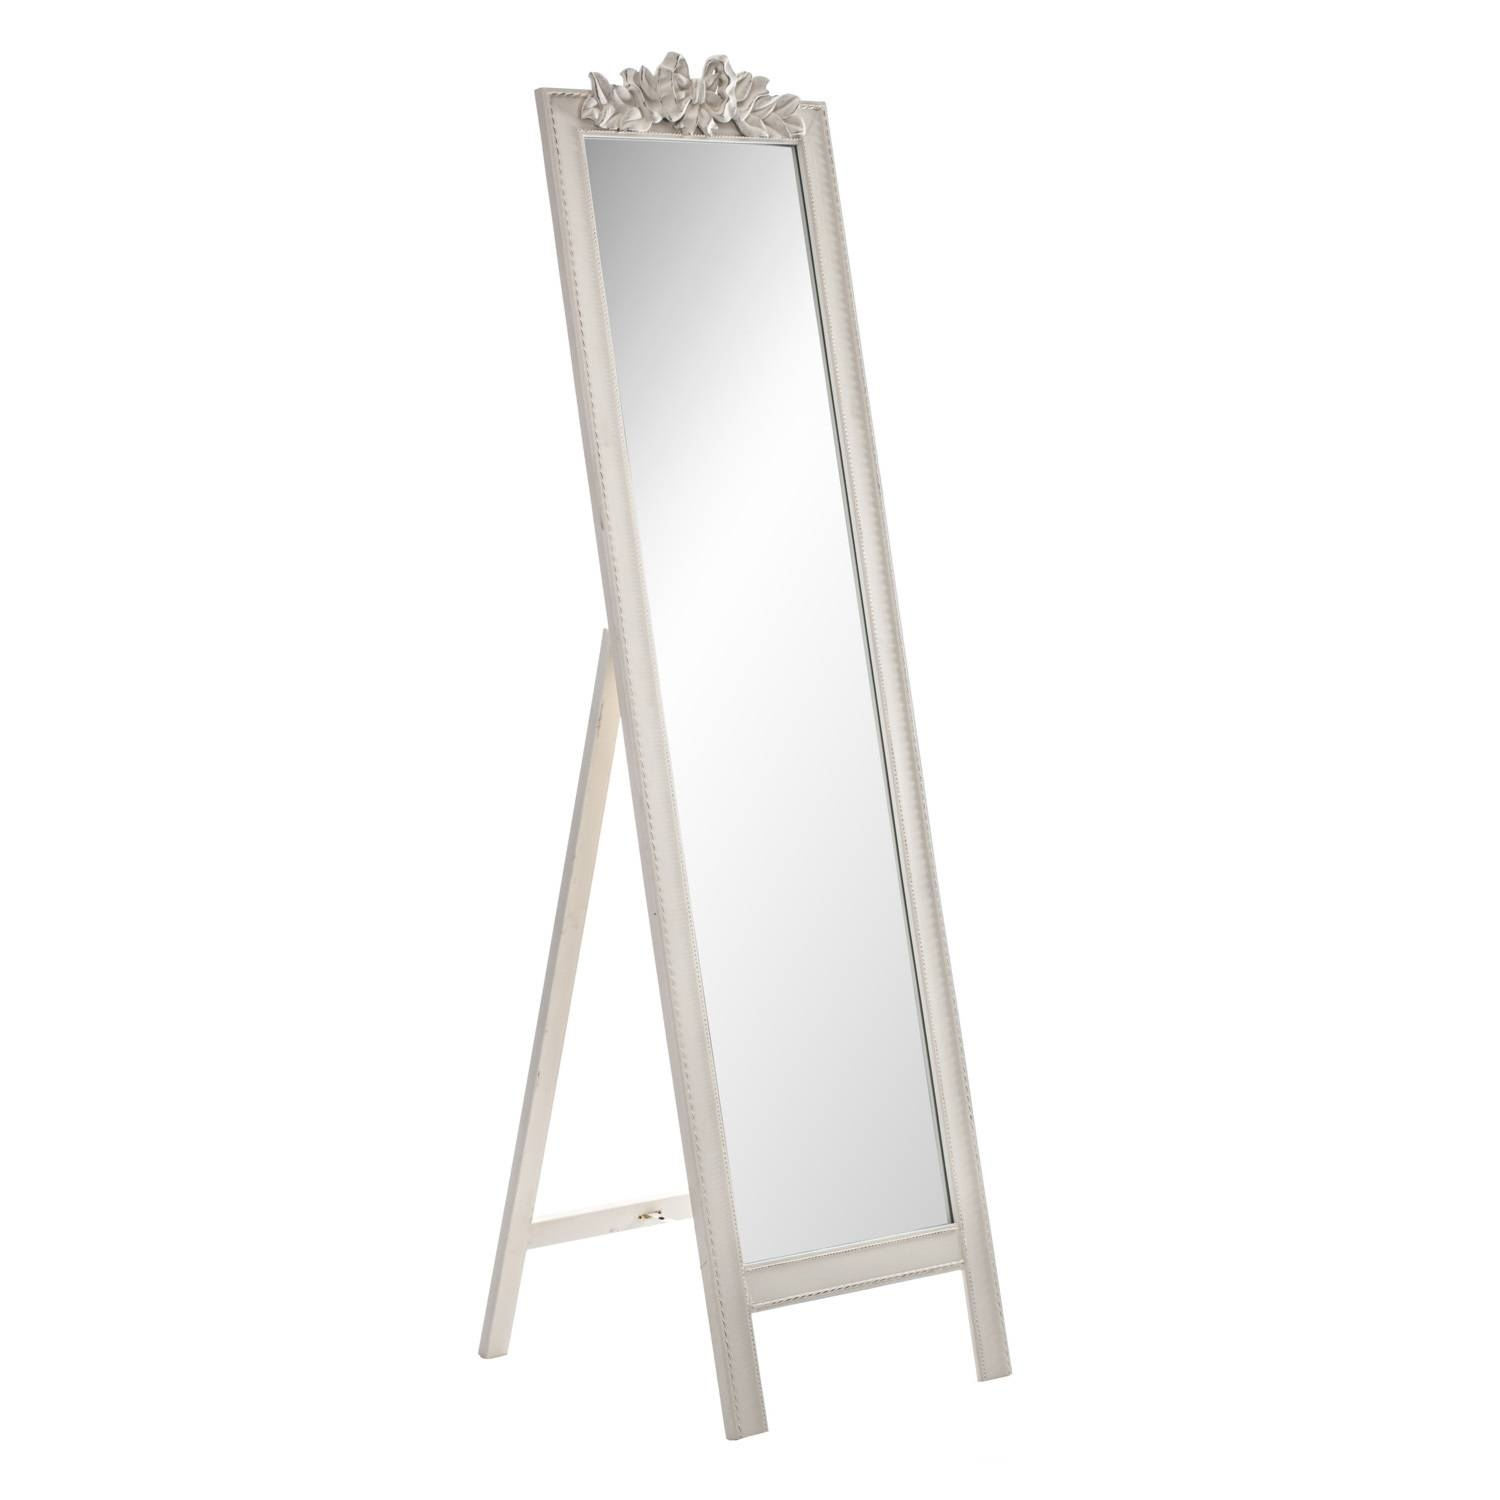 Free Standing Floor Mirrors | The Range With Regard To Black Floor Standing Mirrors (View 13 of 15)